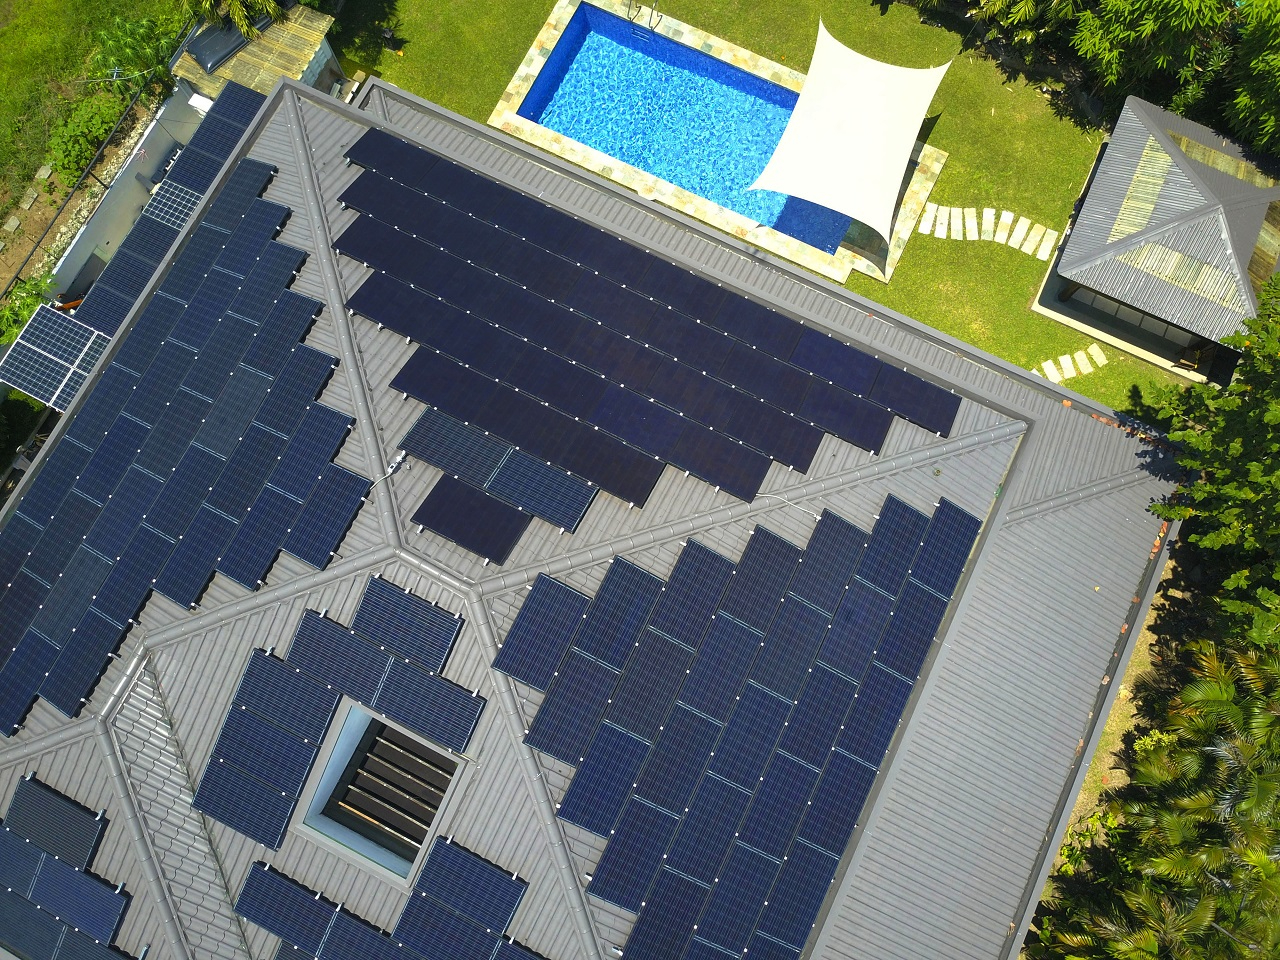 WHY SOLARIC SHOULD BE YOUR NEXT INVESTMENT